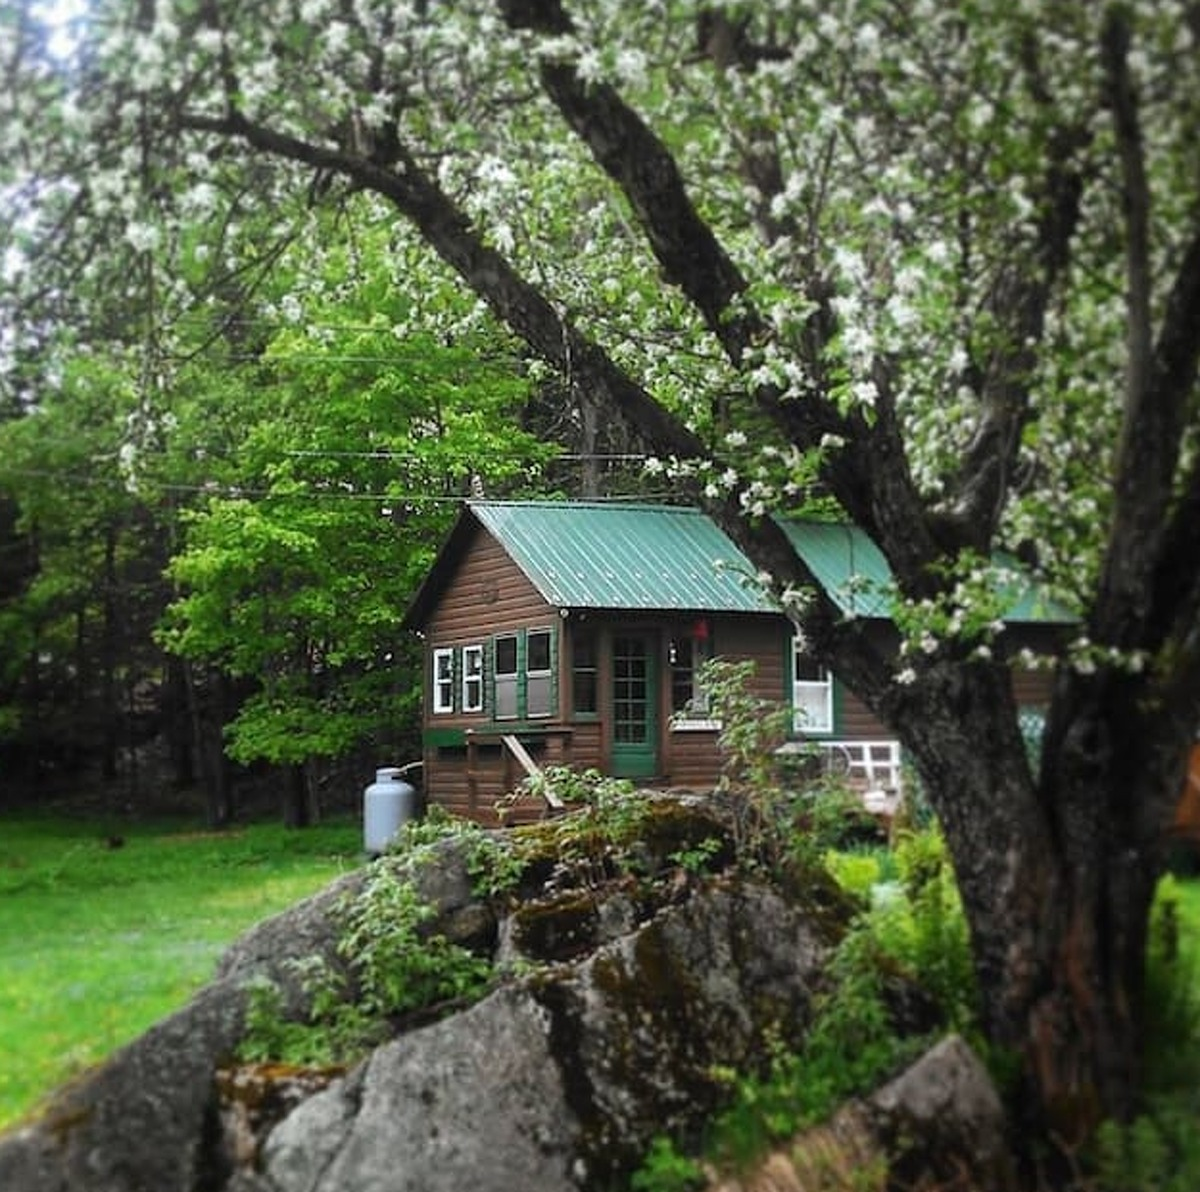 Saranac Lake, NY . Canary Cabin. Price: $125. Quaint, one bedroom cabin with a queen bed, bathroom, living room, kitchenette, and outdoor hot tub. Just a minutes walk to lower Saranac Lake and Dewey Mountain!View full listing on Airbnb.